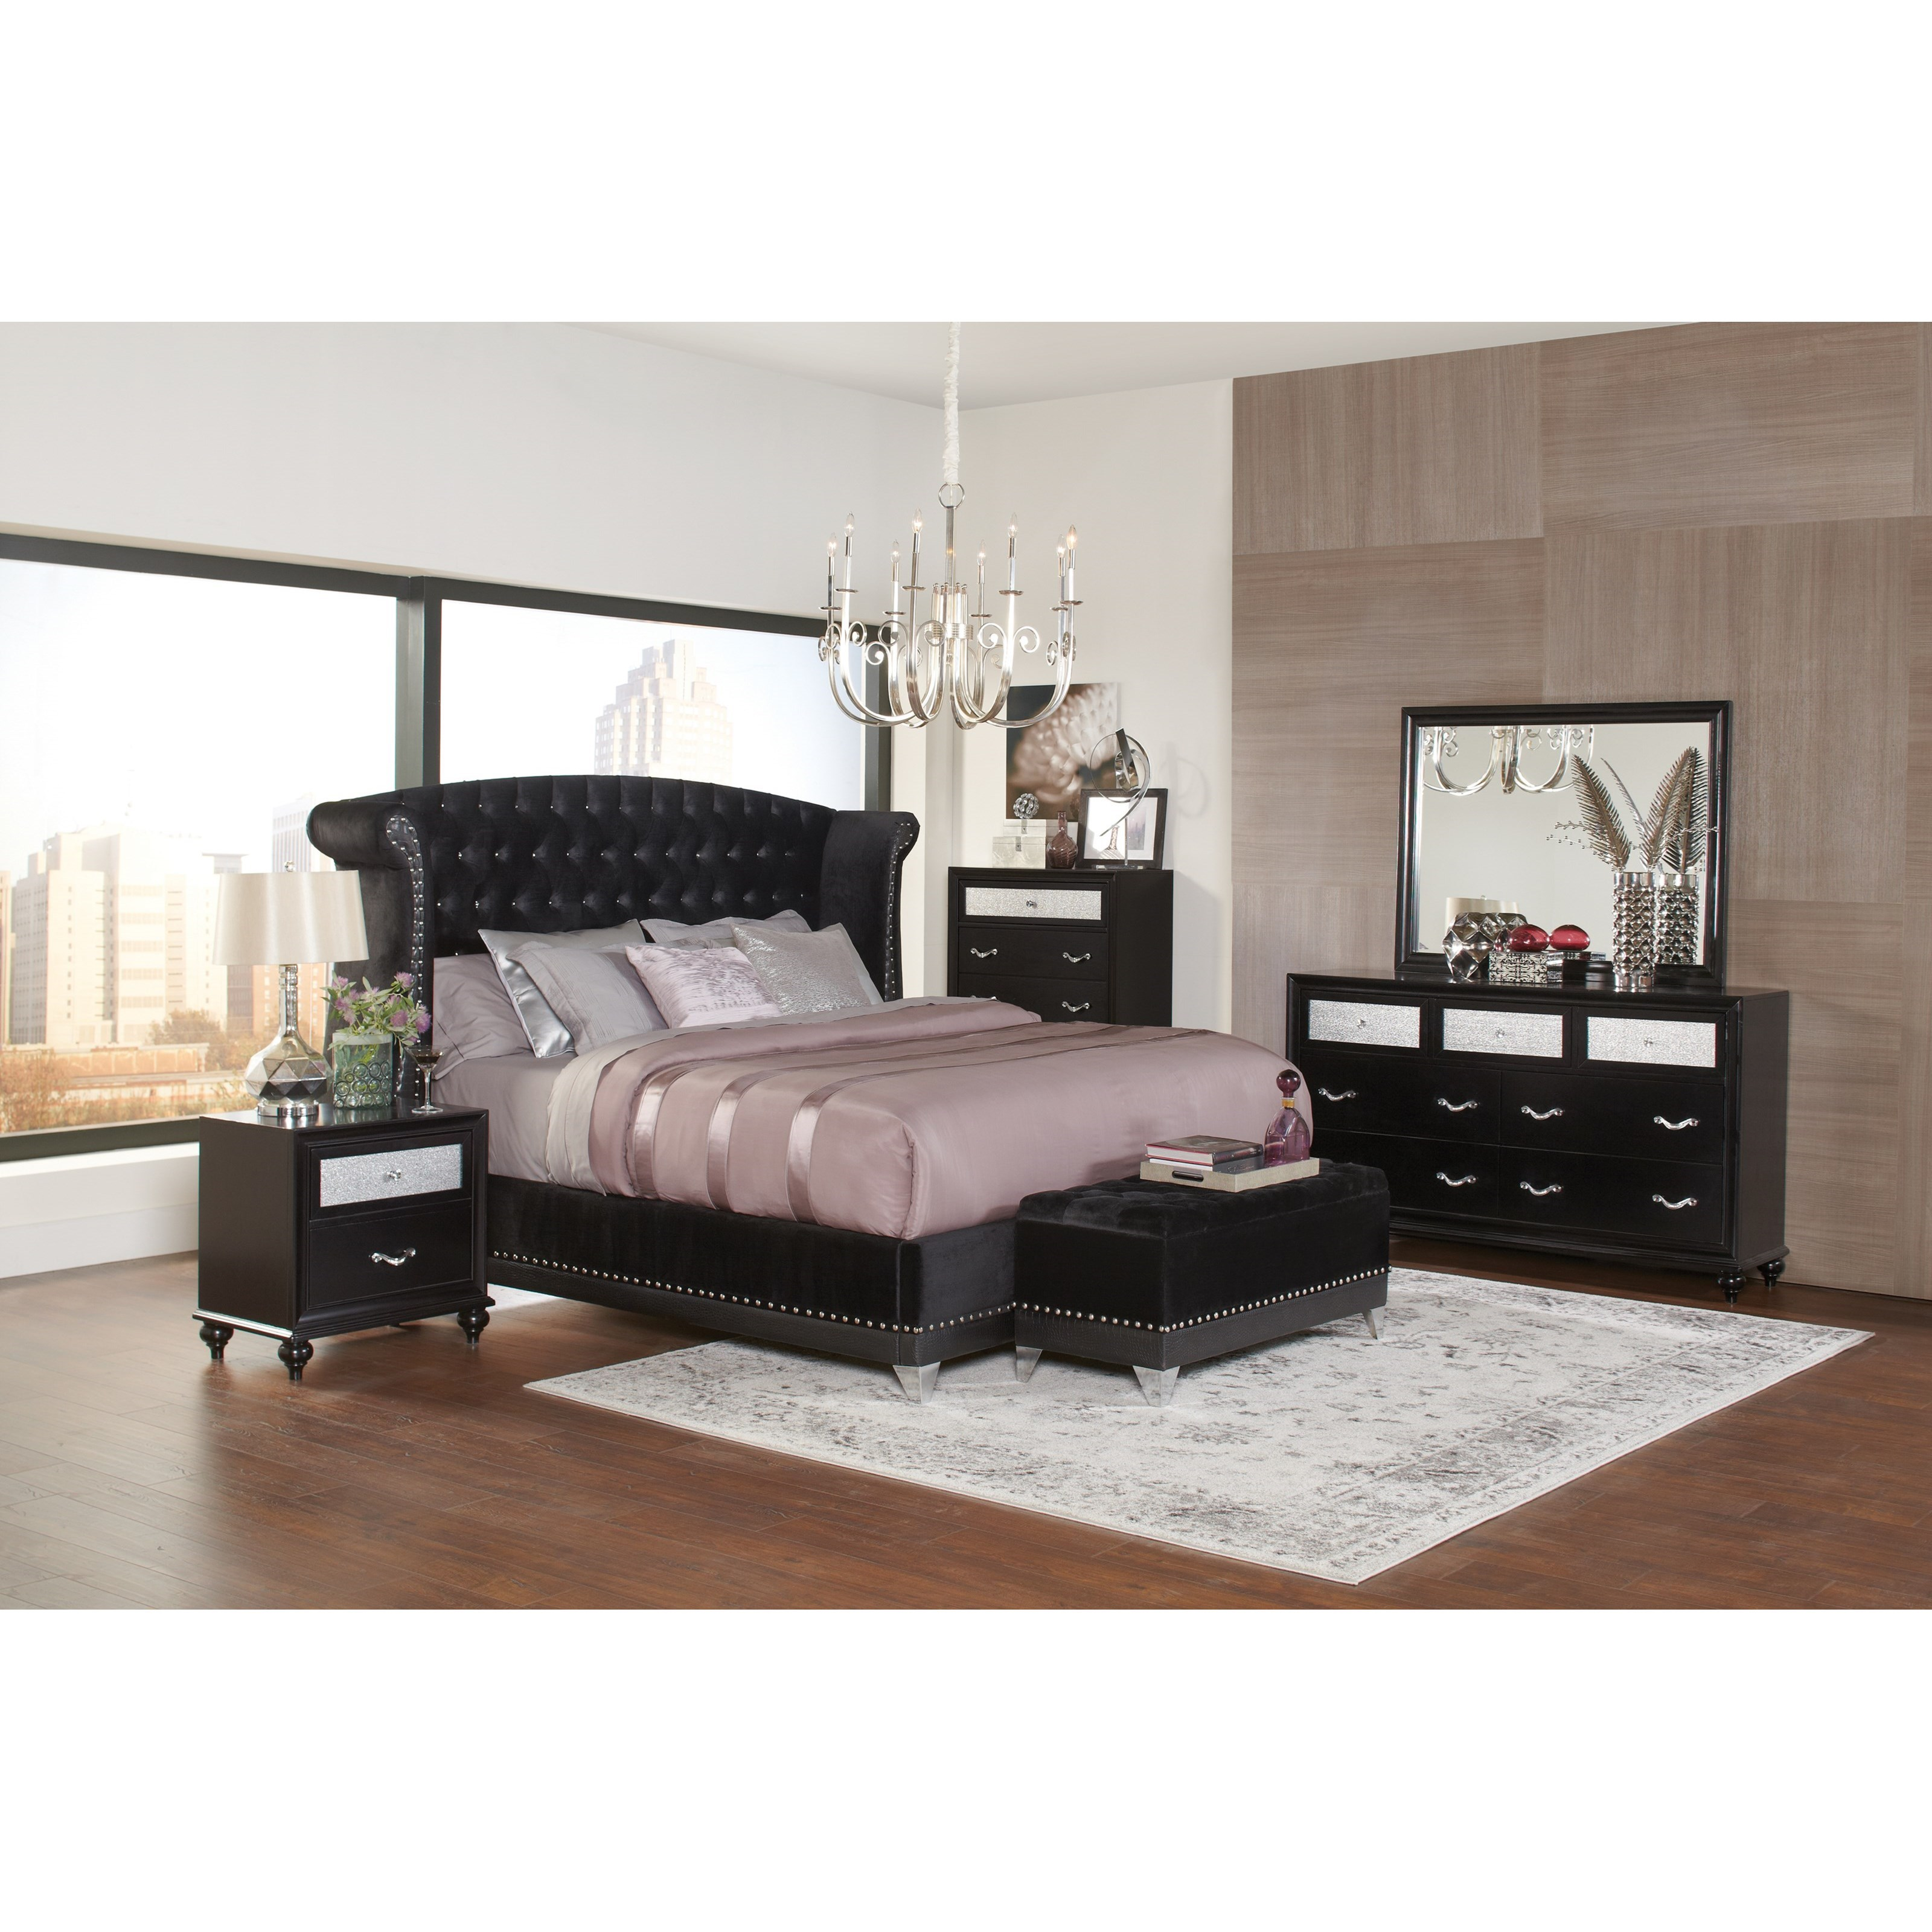 Coaster Barzini 300643Q Glamorous Upholstered Queen Bed